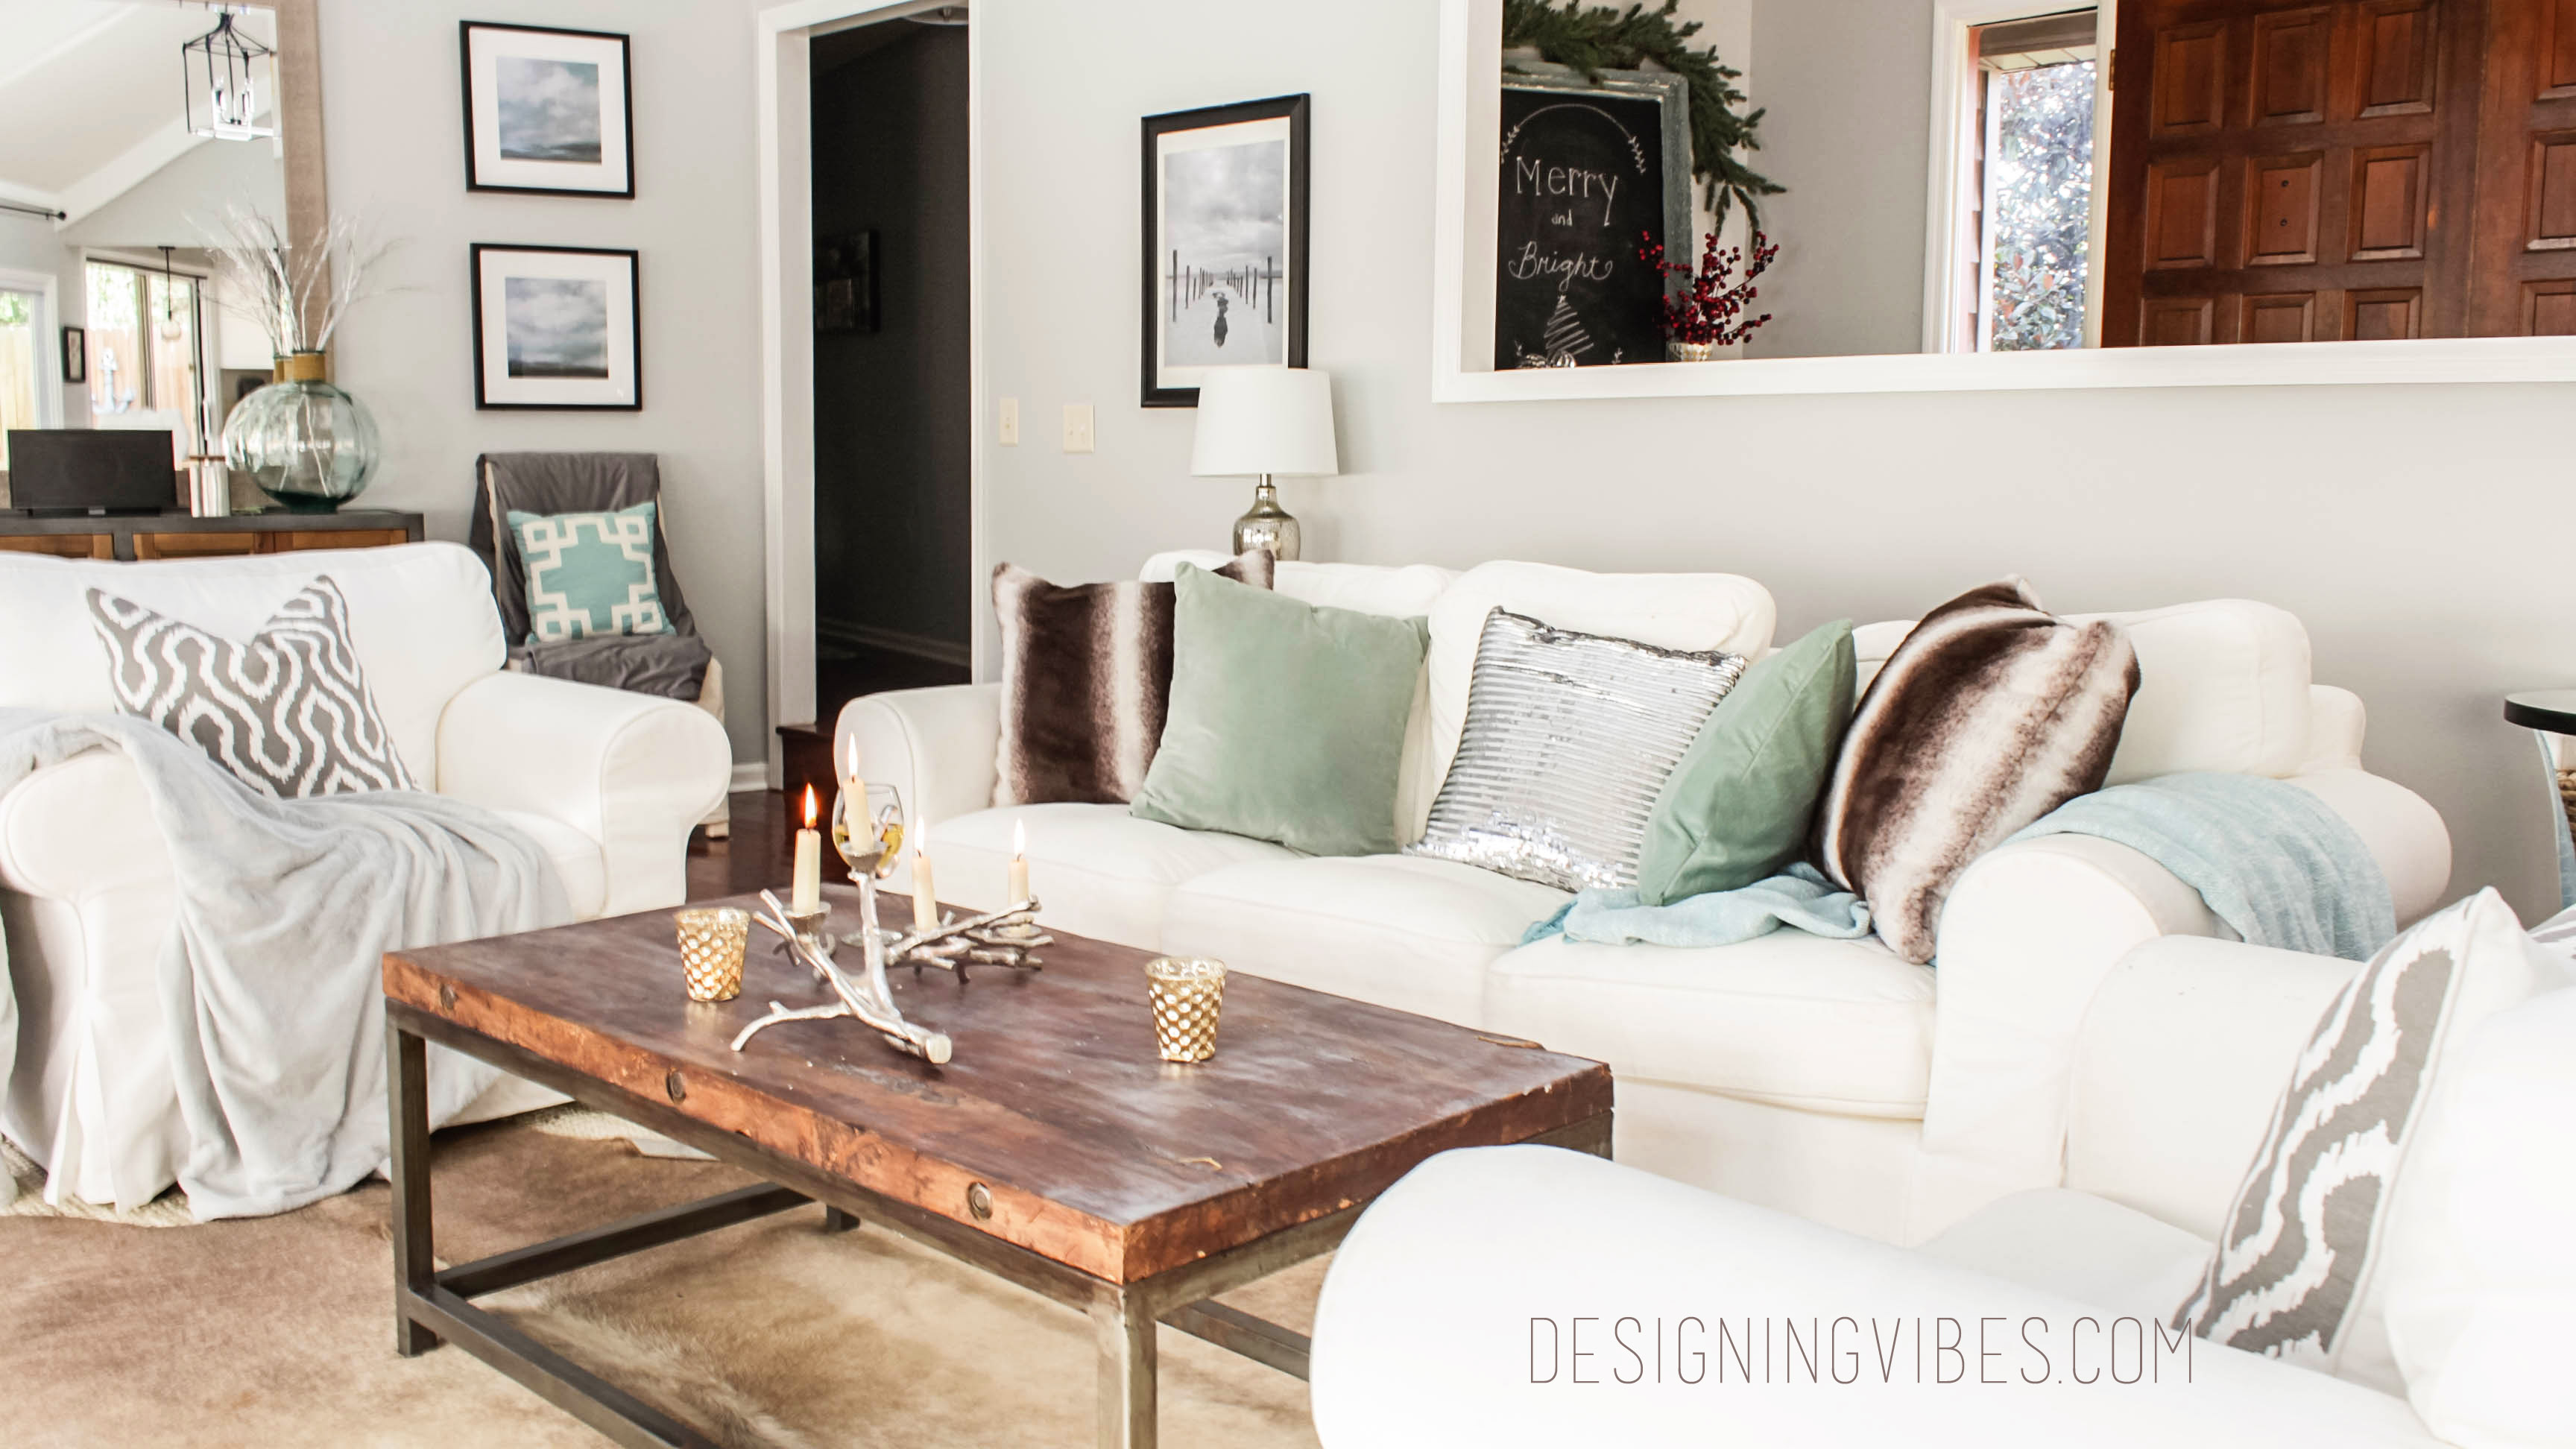 Exceptional Rustic Glam Living Room Part - 10: Rustic Glam Decor